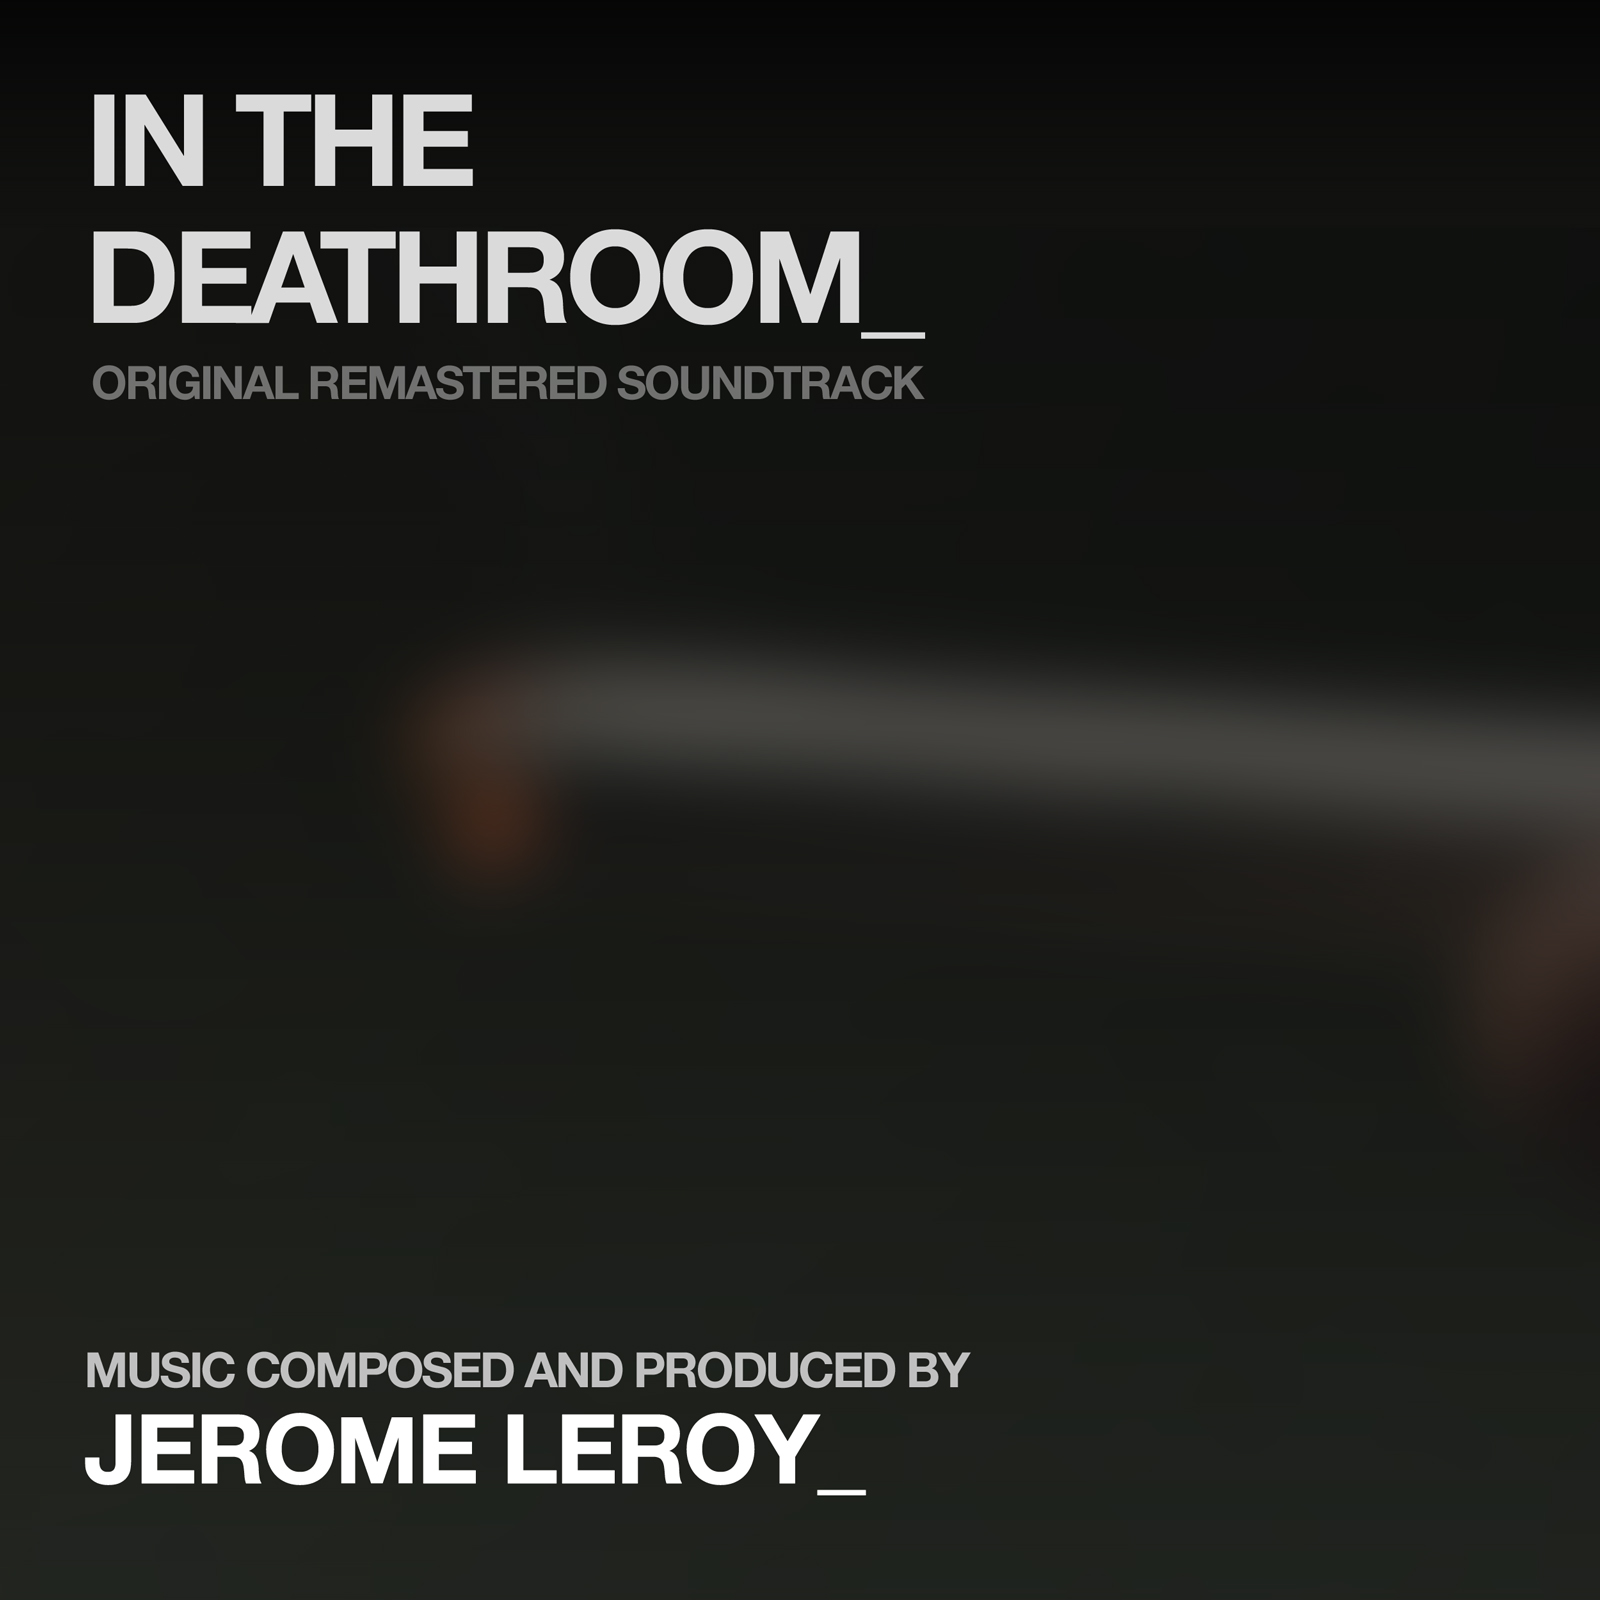 In the Deathroom - Original Remastered Soundtrack (Cover Art) 1600px.jpg